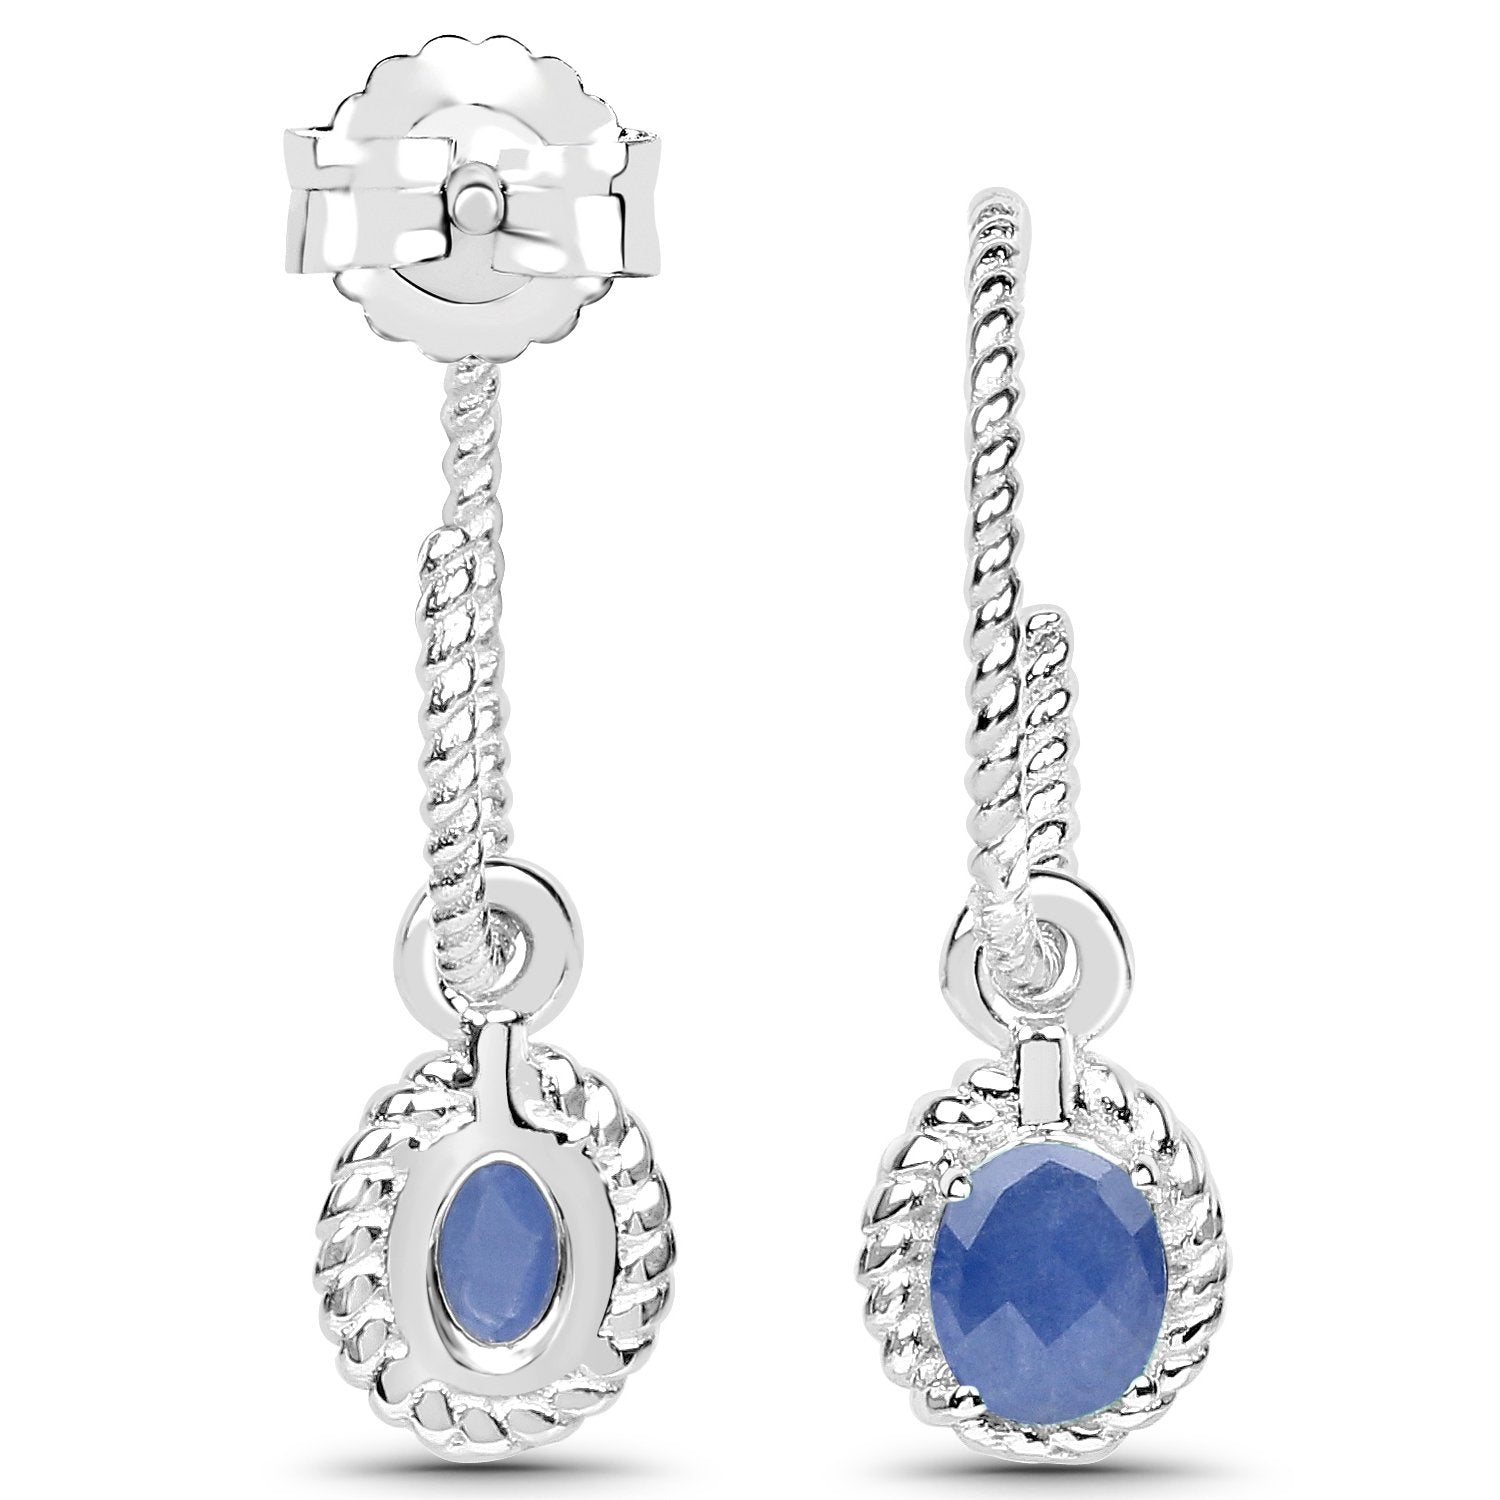 LoveHuang 0.62 Carats Genuine Blue Sapphire Dangle Earrings Solid .925 Sterling Silver With Rhodium Plating